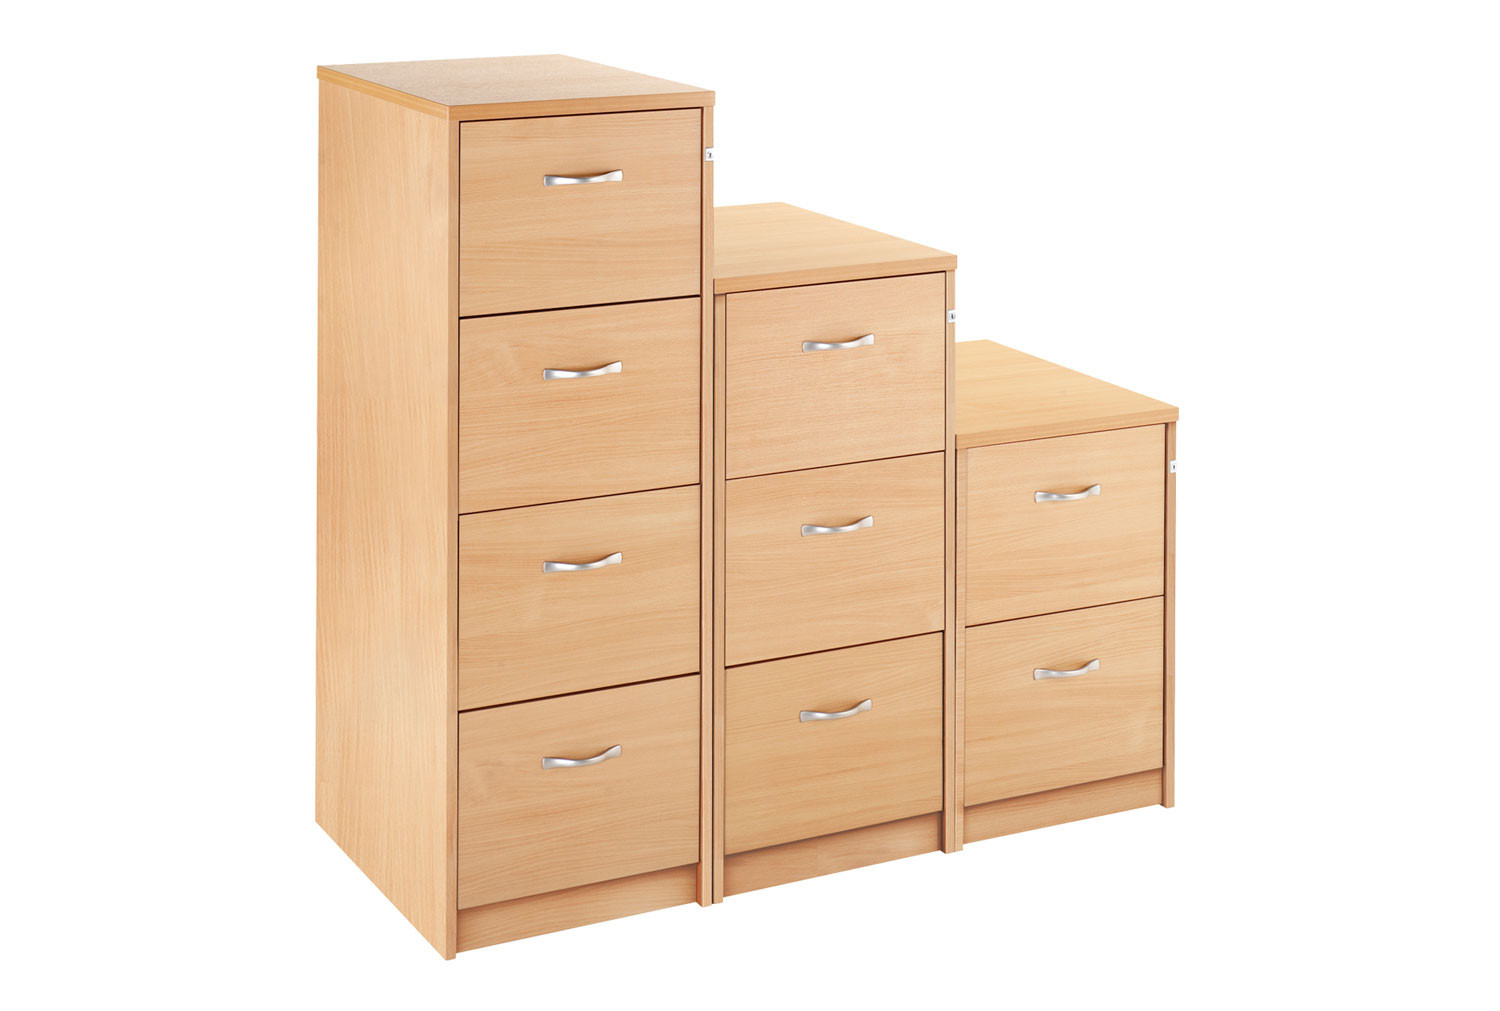 Tully Filing Cabinets